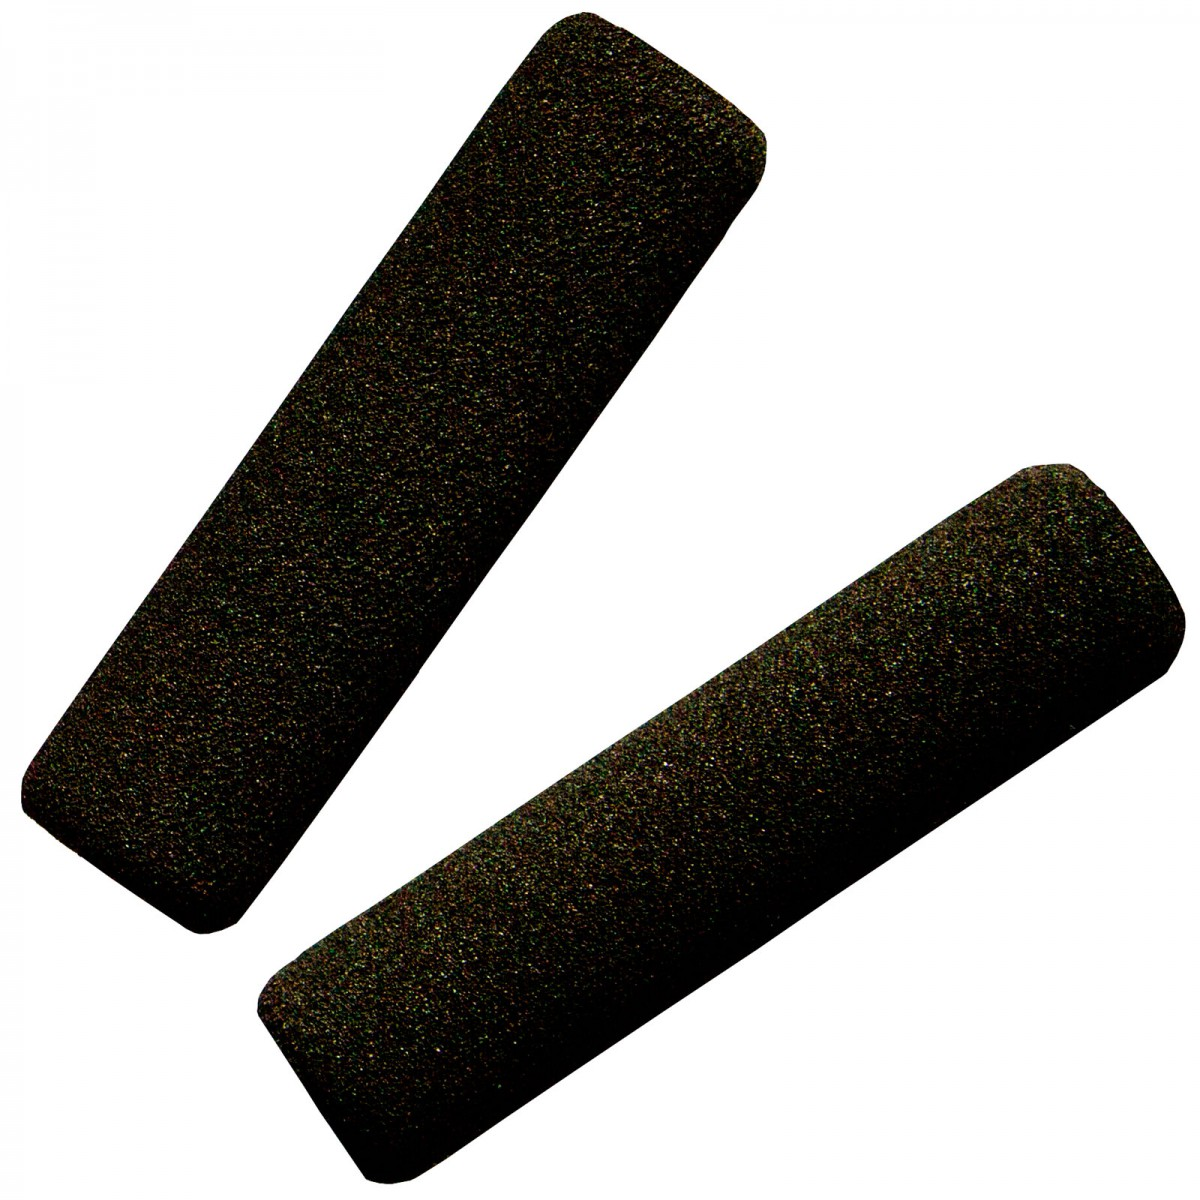 Rev1 or Rev2 foam grips